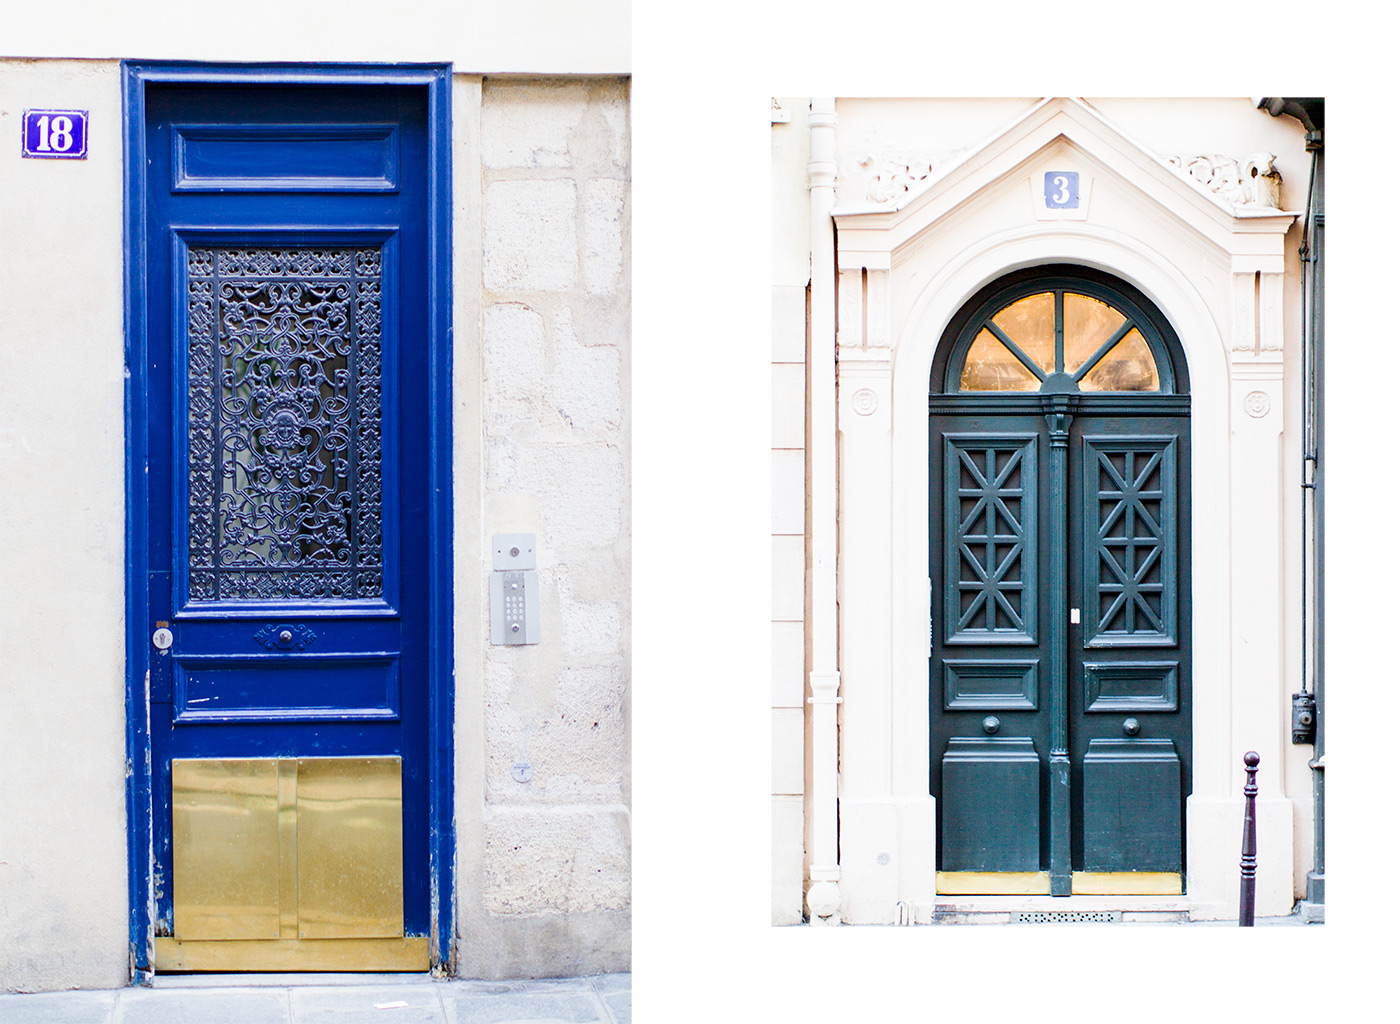 parisian-blue-door-photography-by-armenyl-com